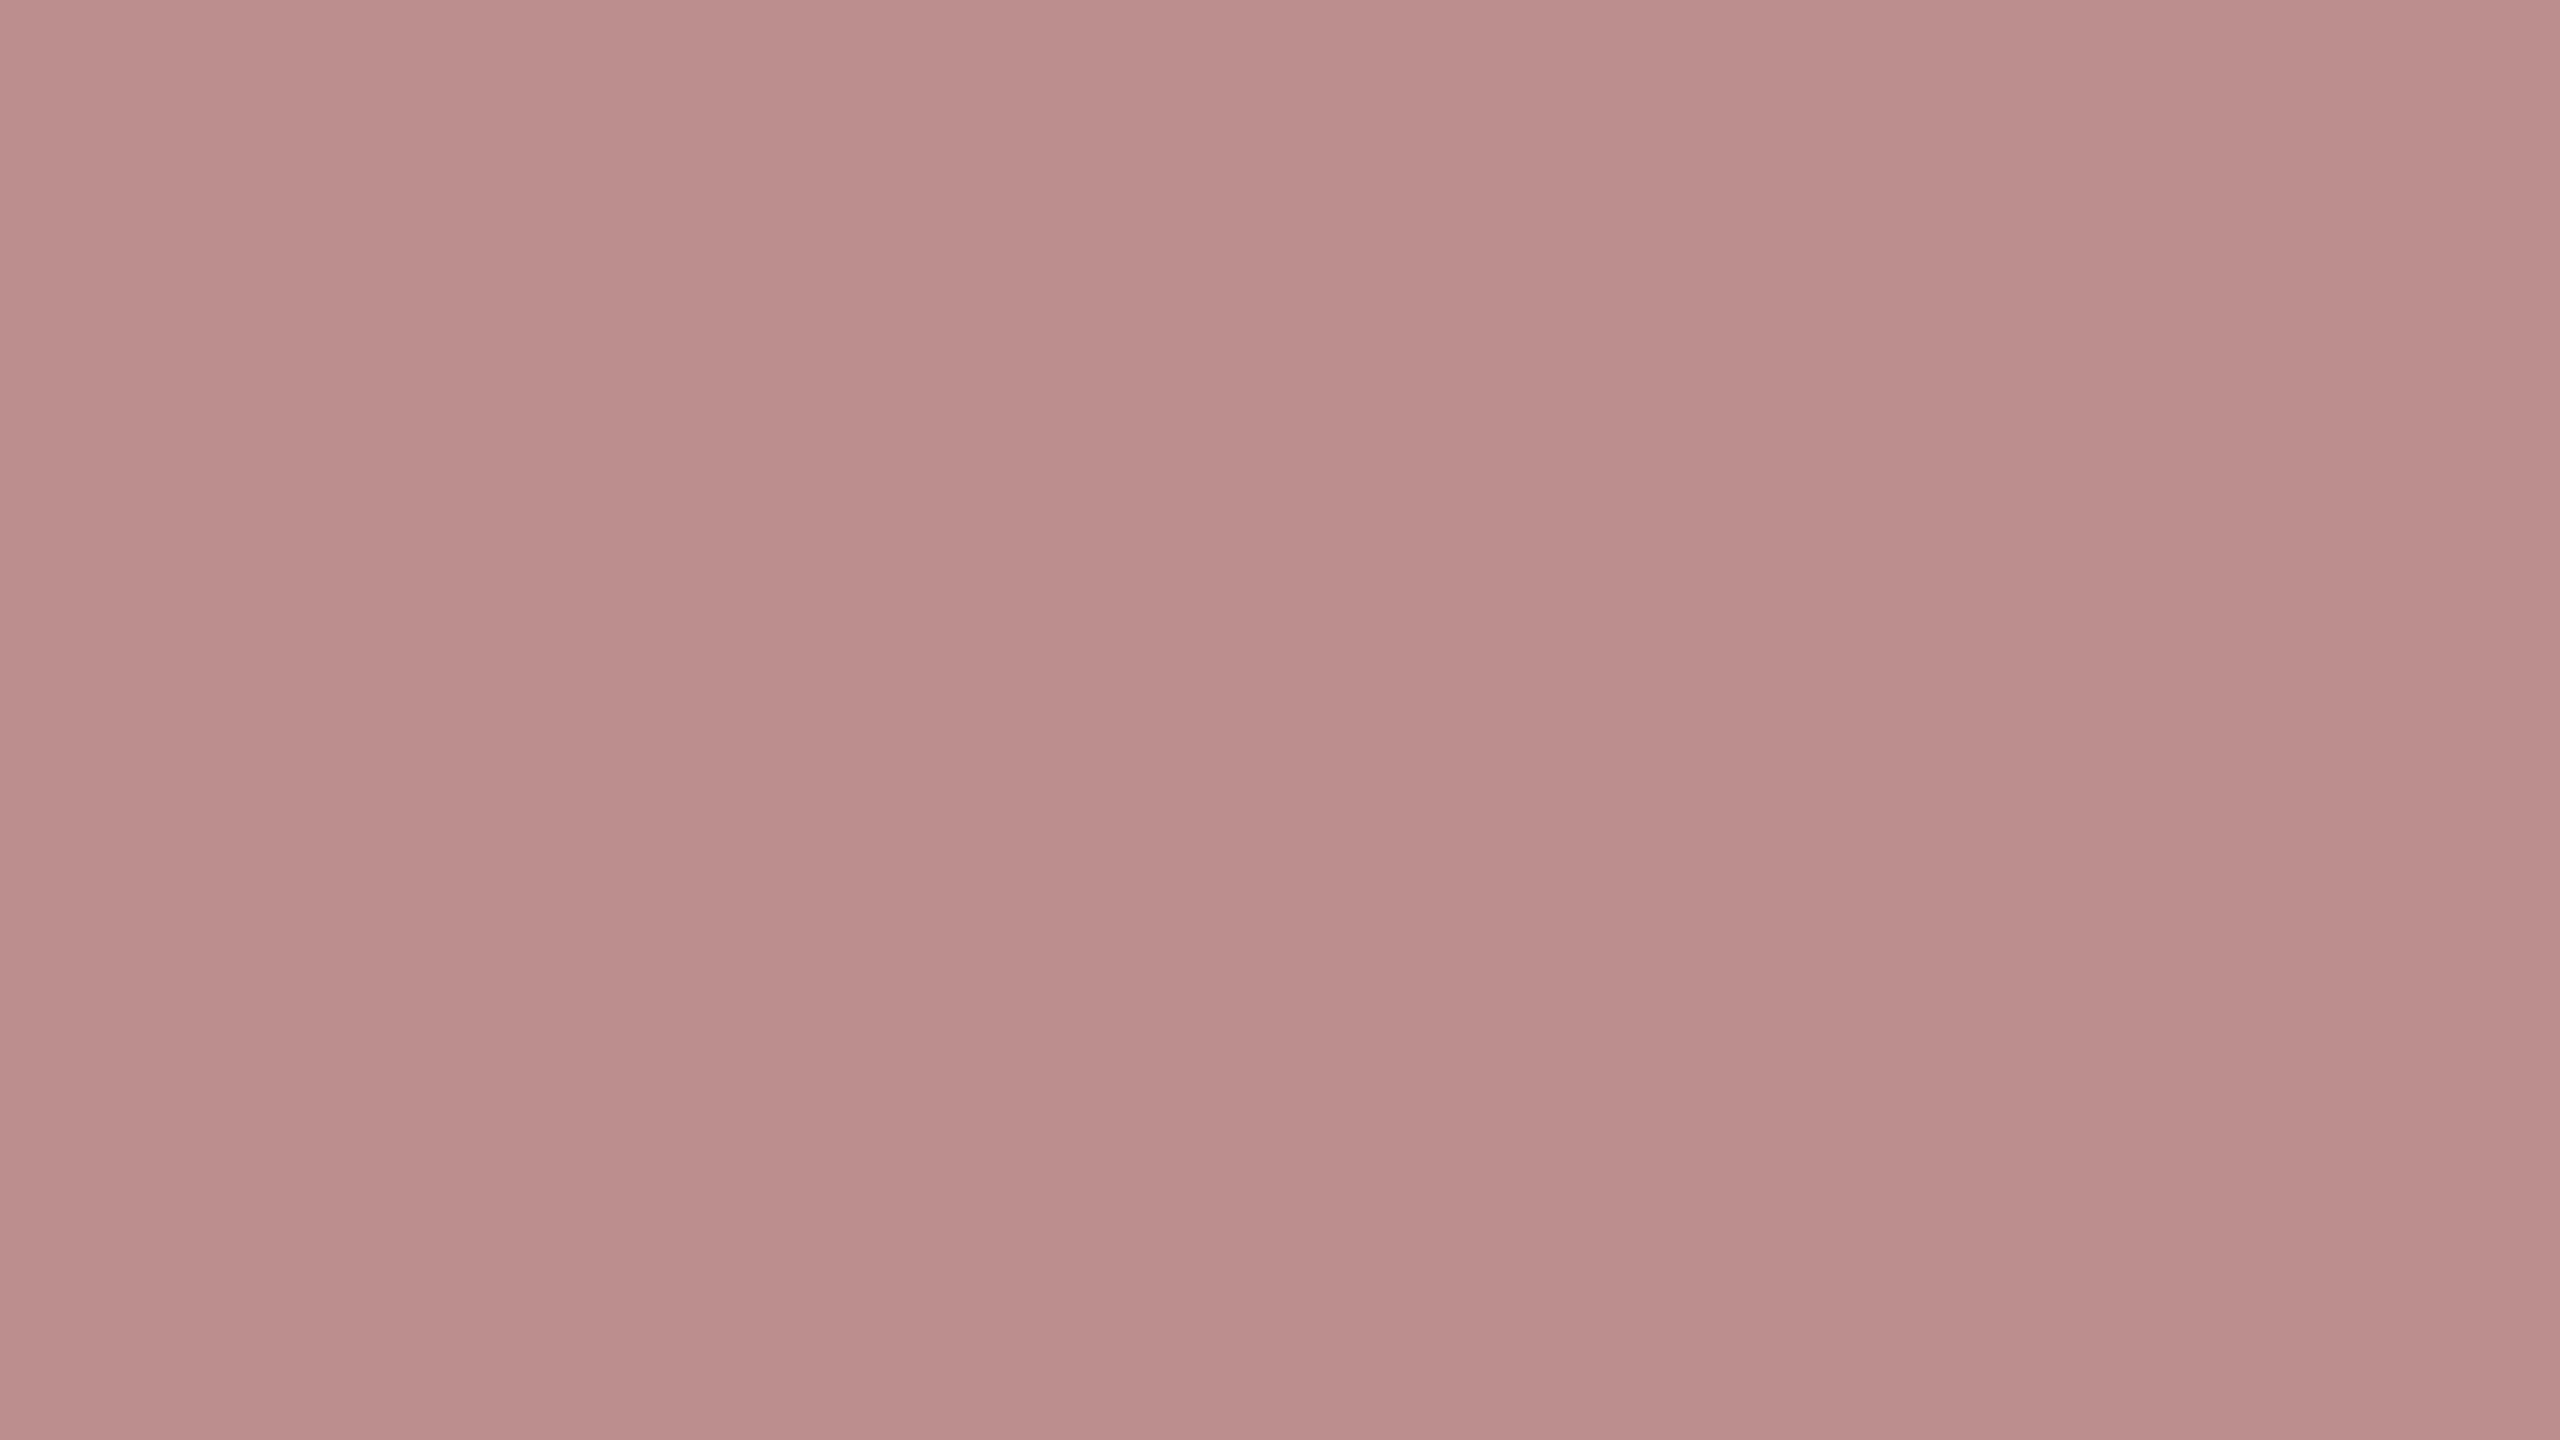 2560x1440 Rosy Brown Solid Color Background